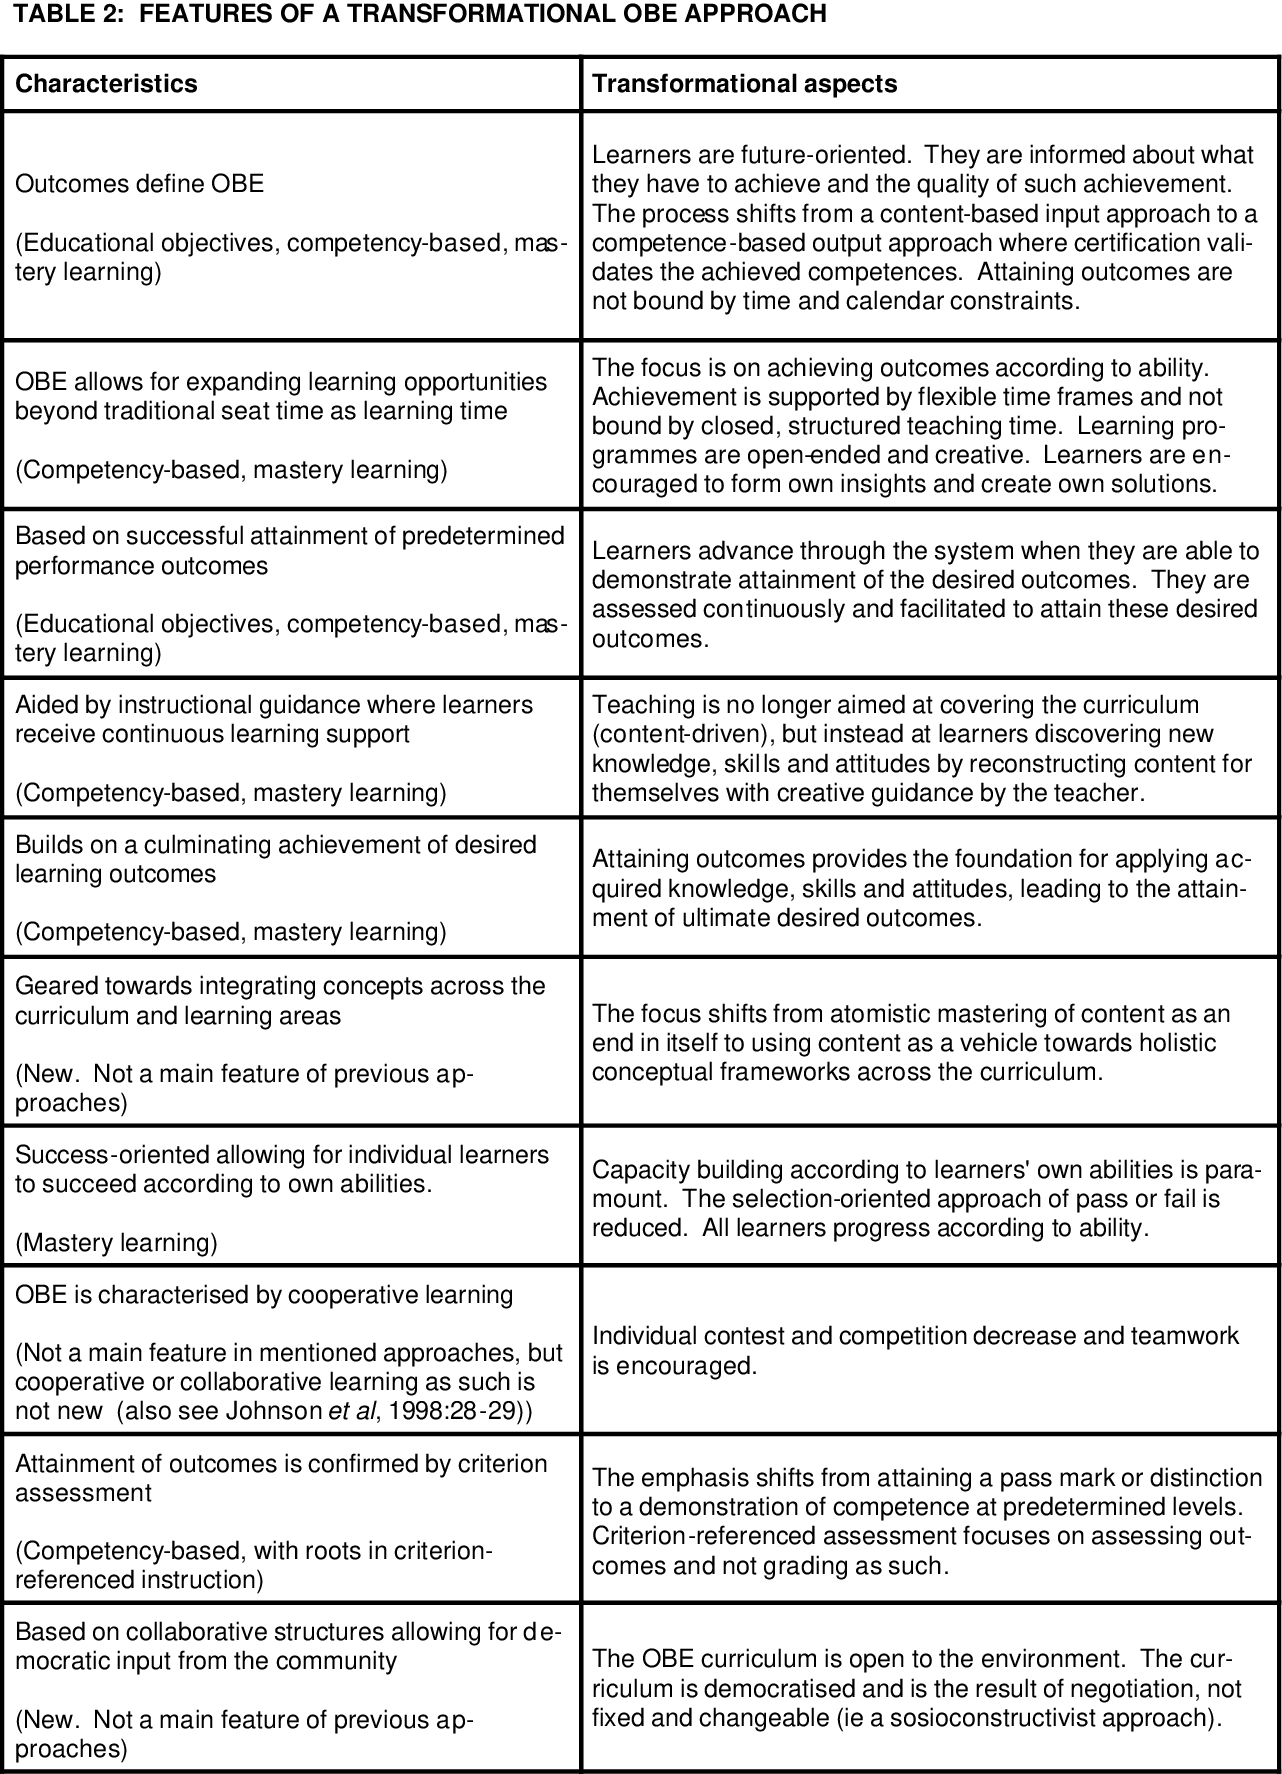 A New Paradigm Of Public Education >> Table 2 From The New Paradigm Of Outcomes Based Education In